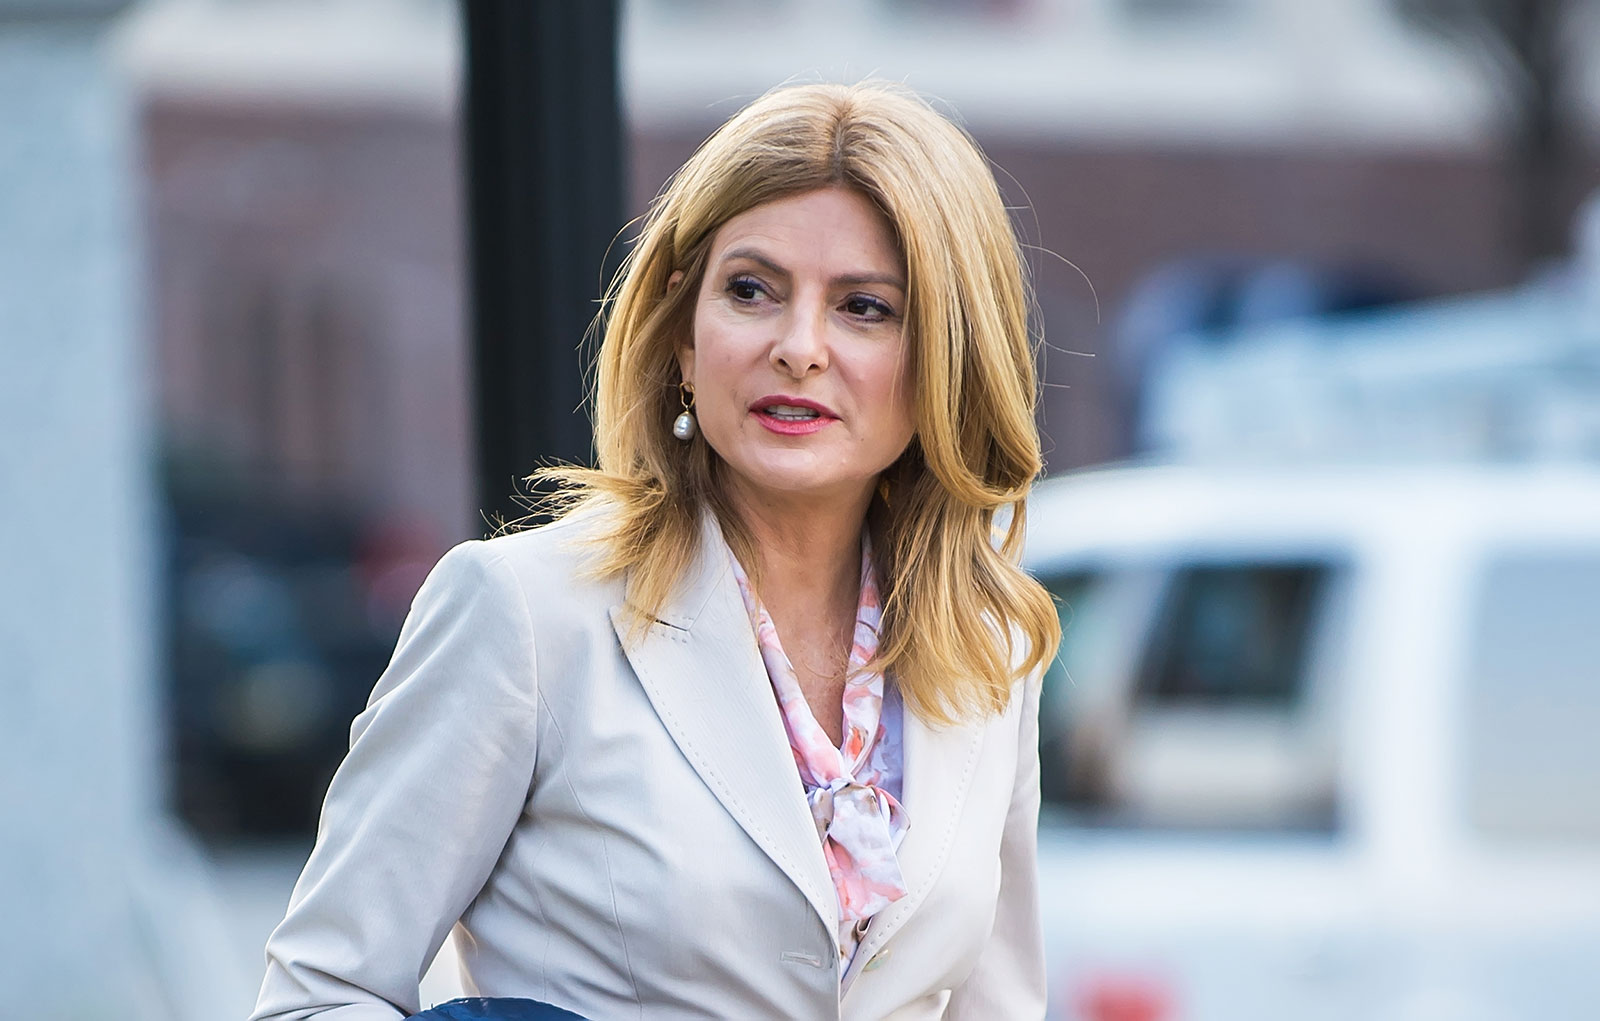 Attorney Lisa Bloom pictured outside of the Montgomery County courthouse in 2018.